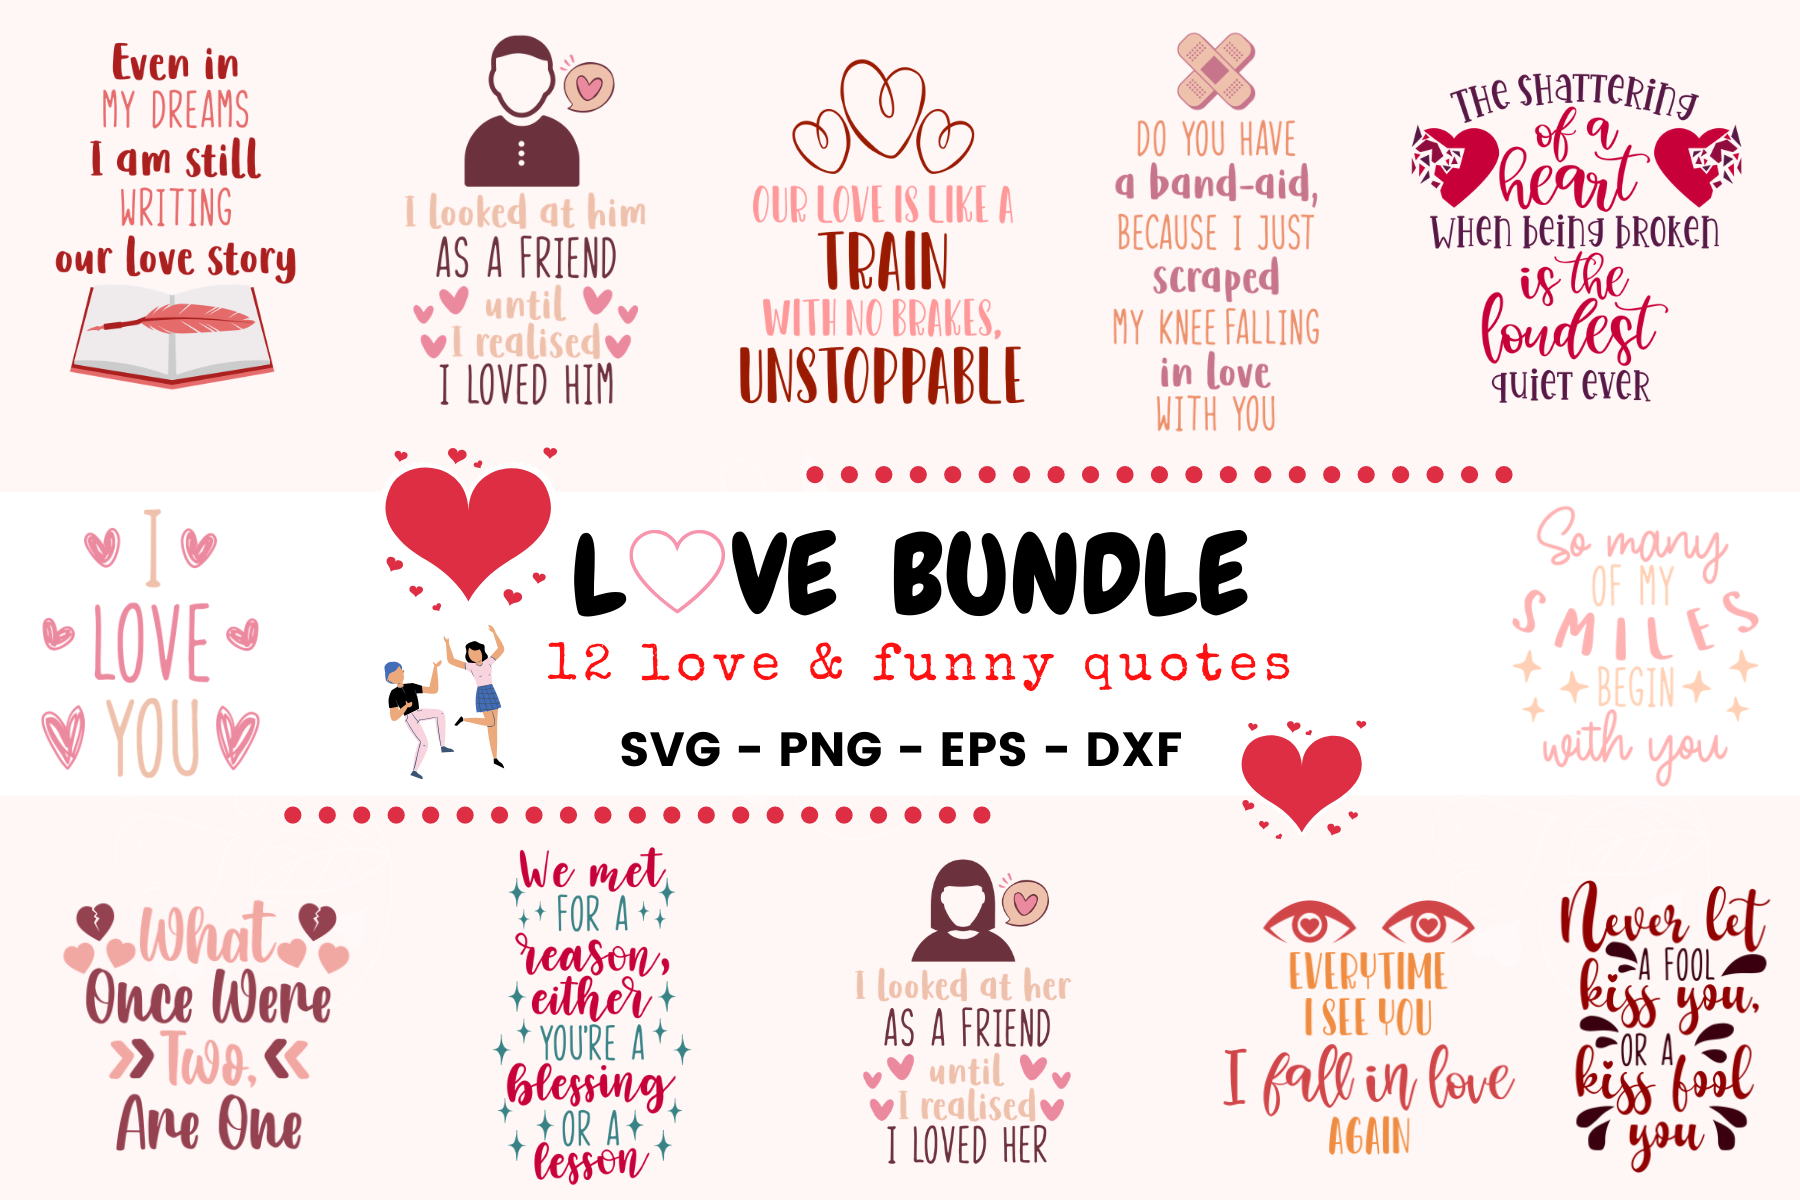 Download Free Love Bundle 12 Love Funny Quotes Graphic By Graphipedia for Cricut Explore, Silhouette and other cutting machines.